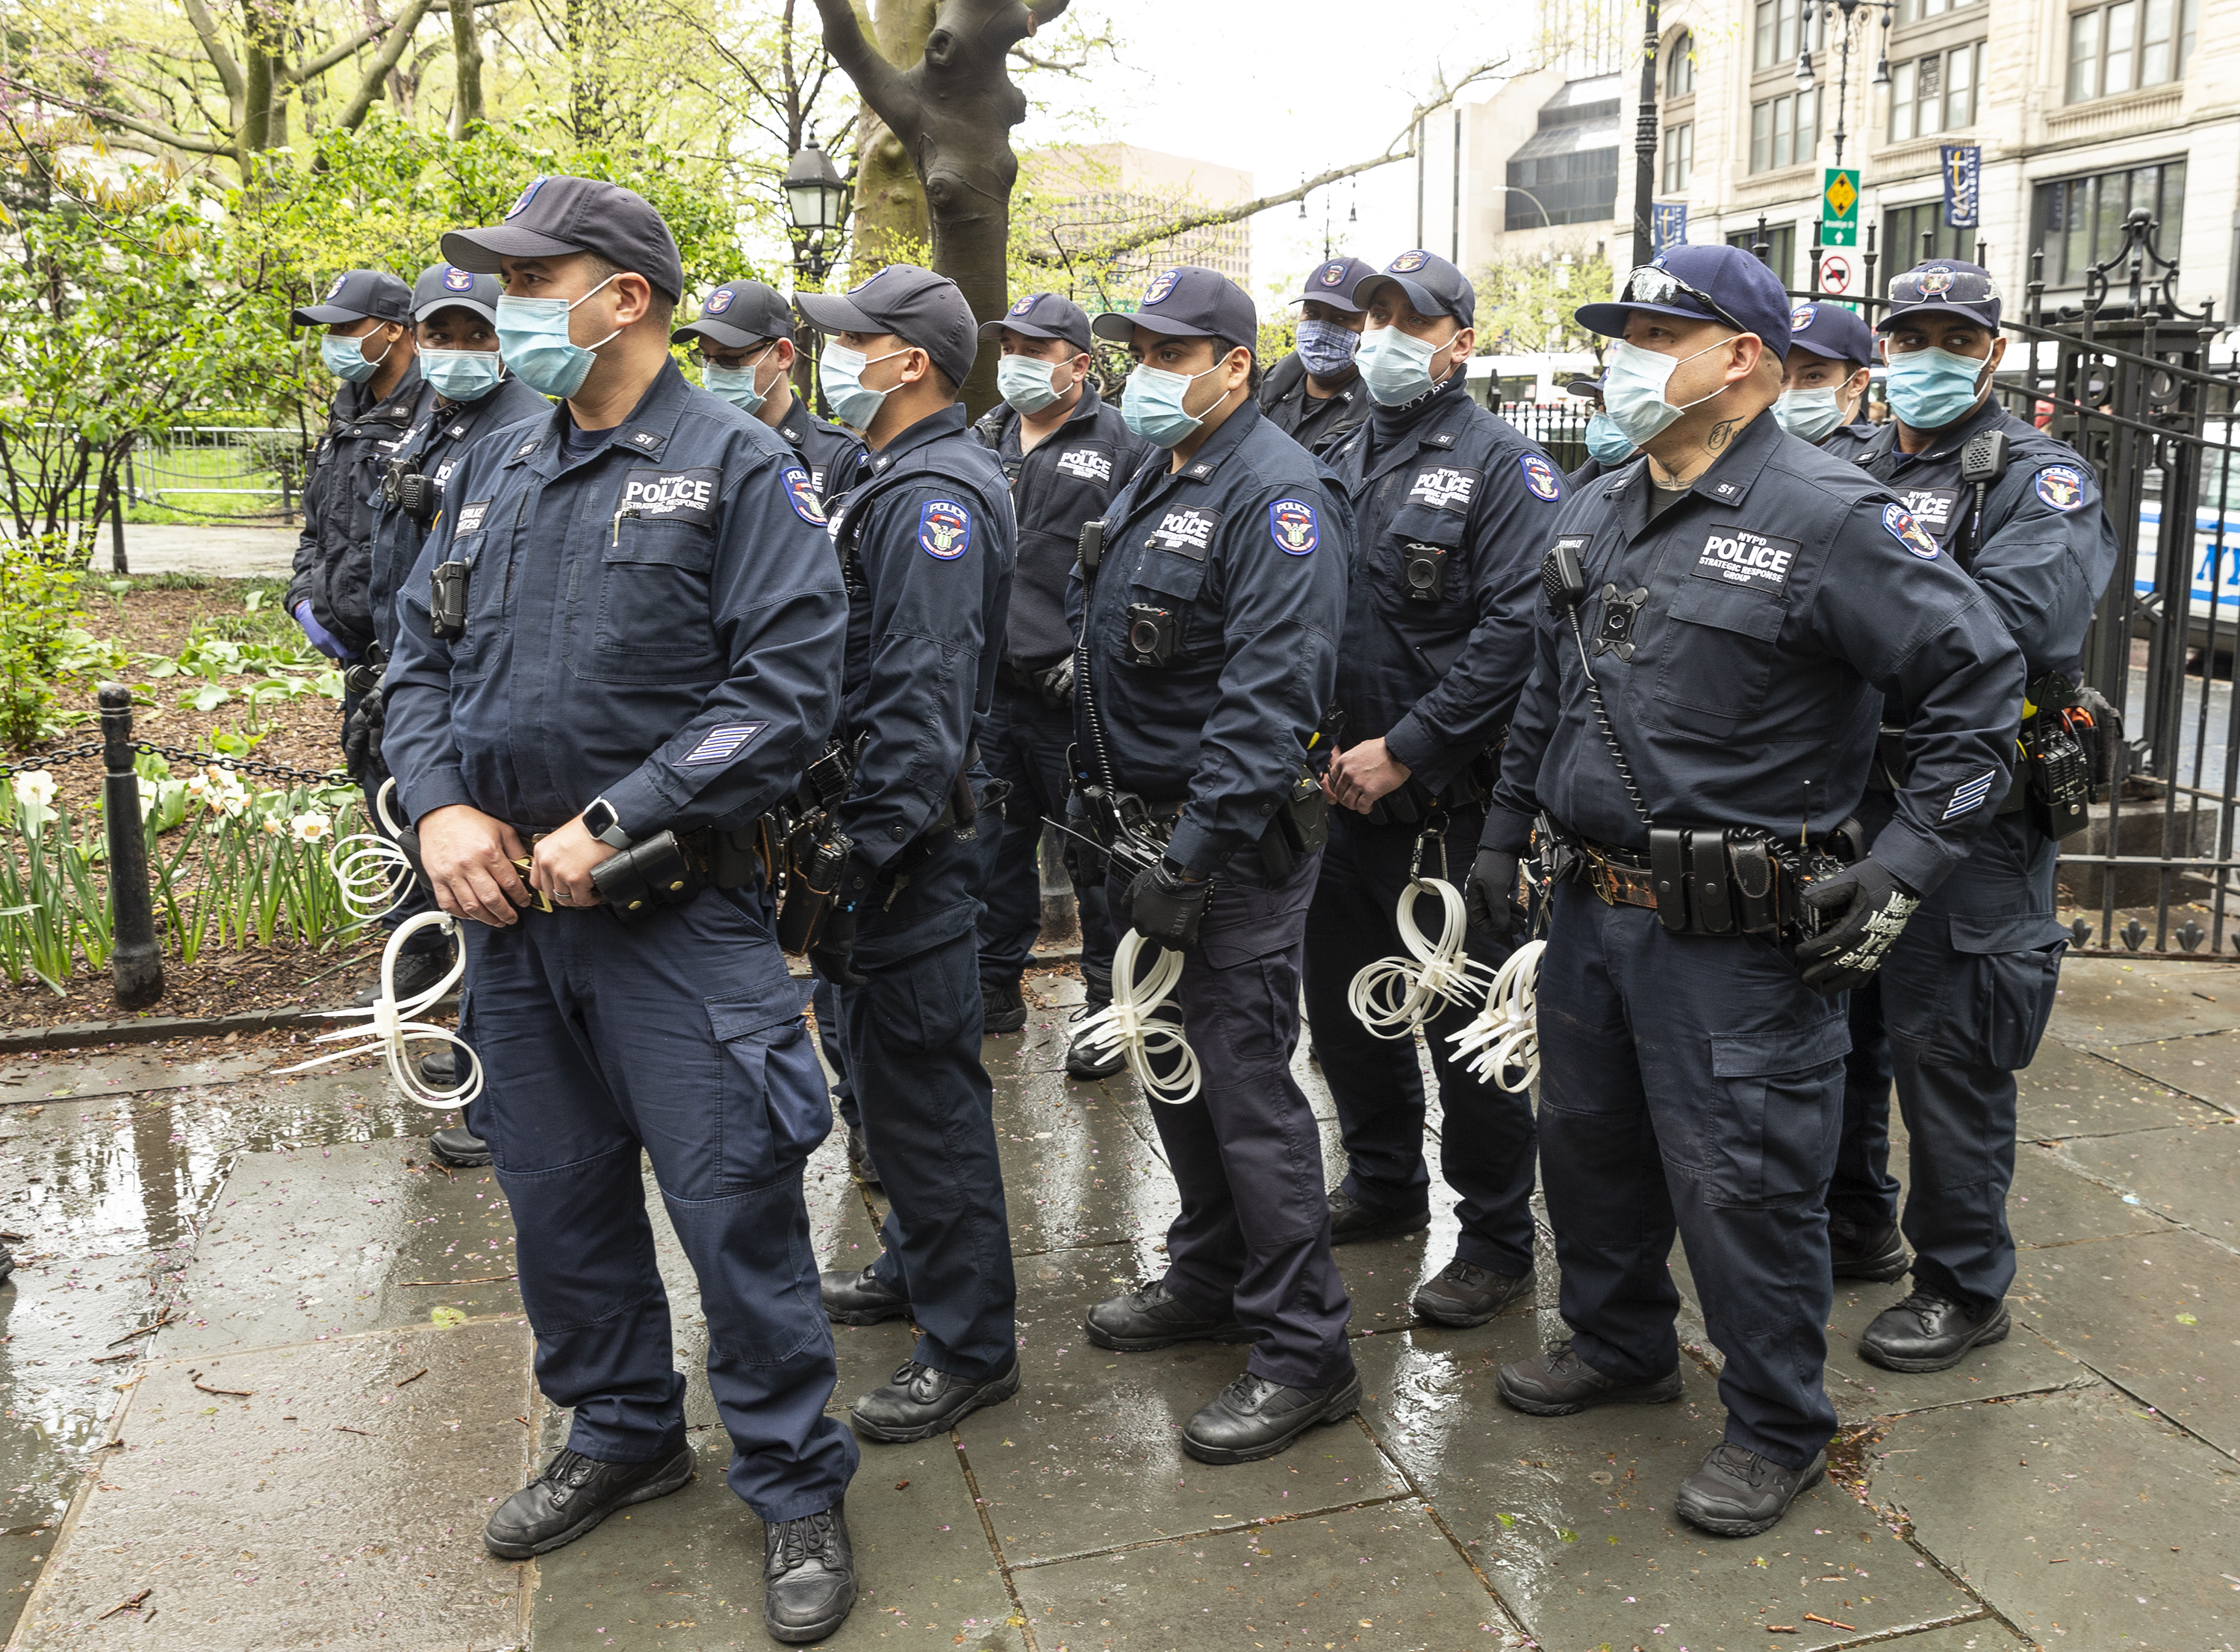 Police officers watch as activists hold small Make America Great Again (MAGA) rally in City Hall Park advocating for reopening New York state regardless of COVID-19 pandemic.